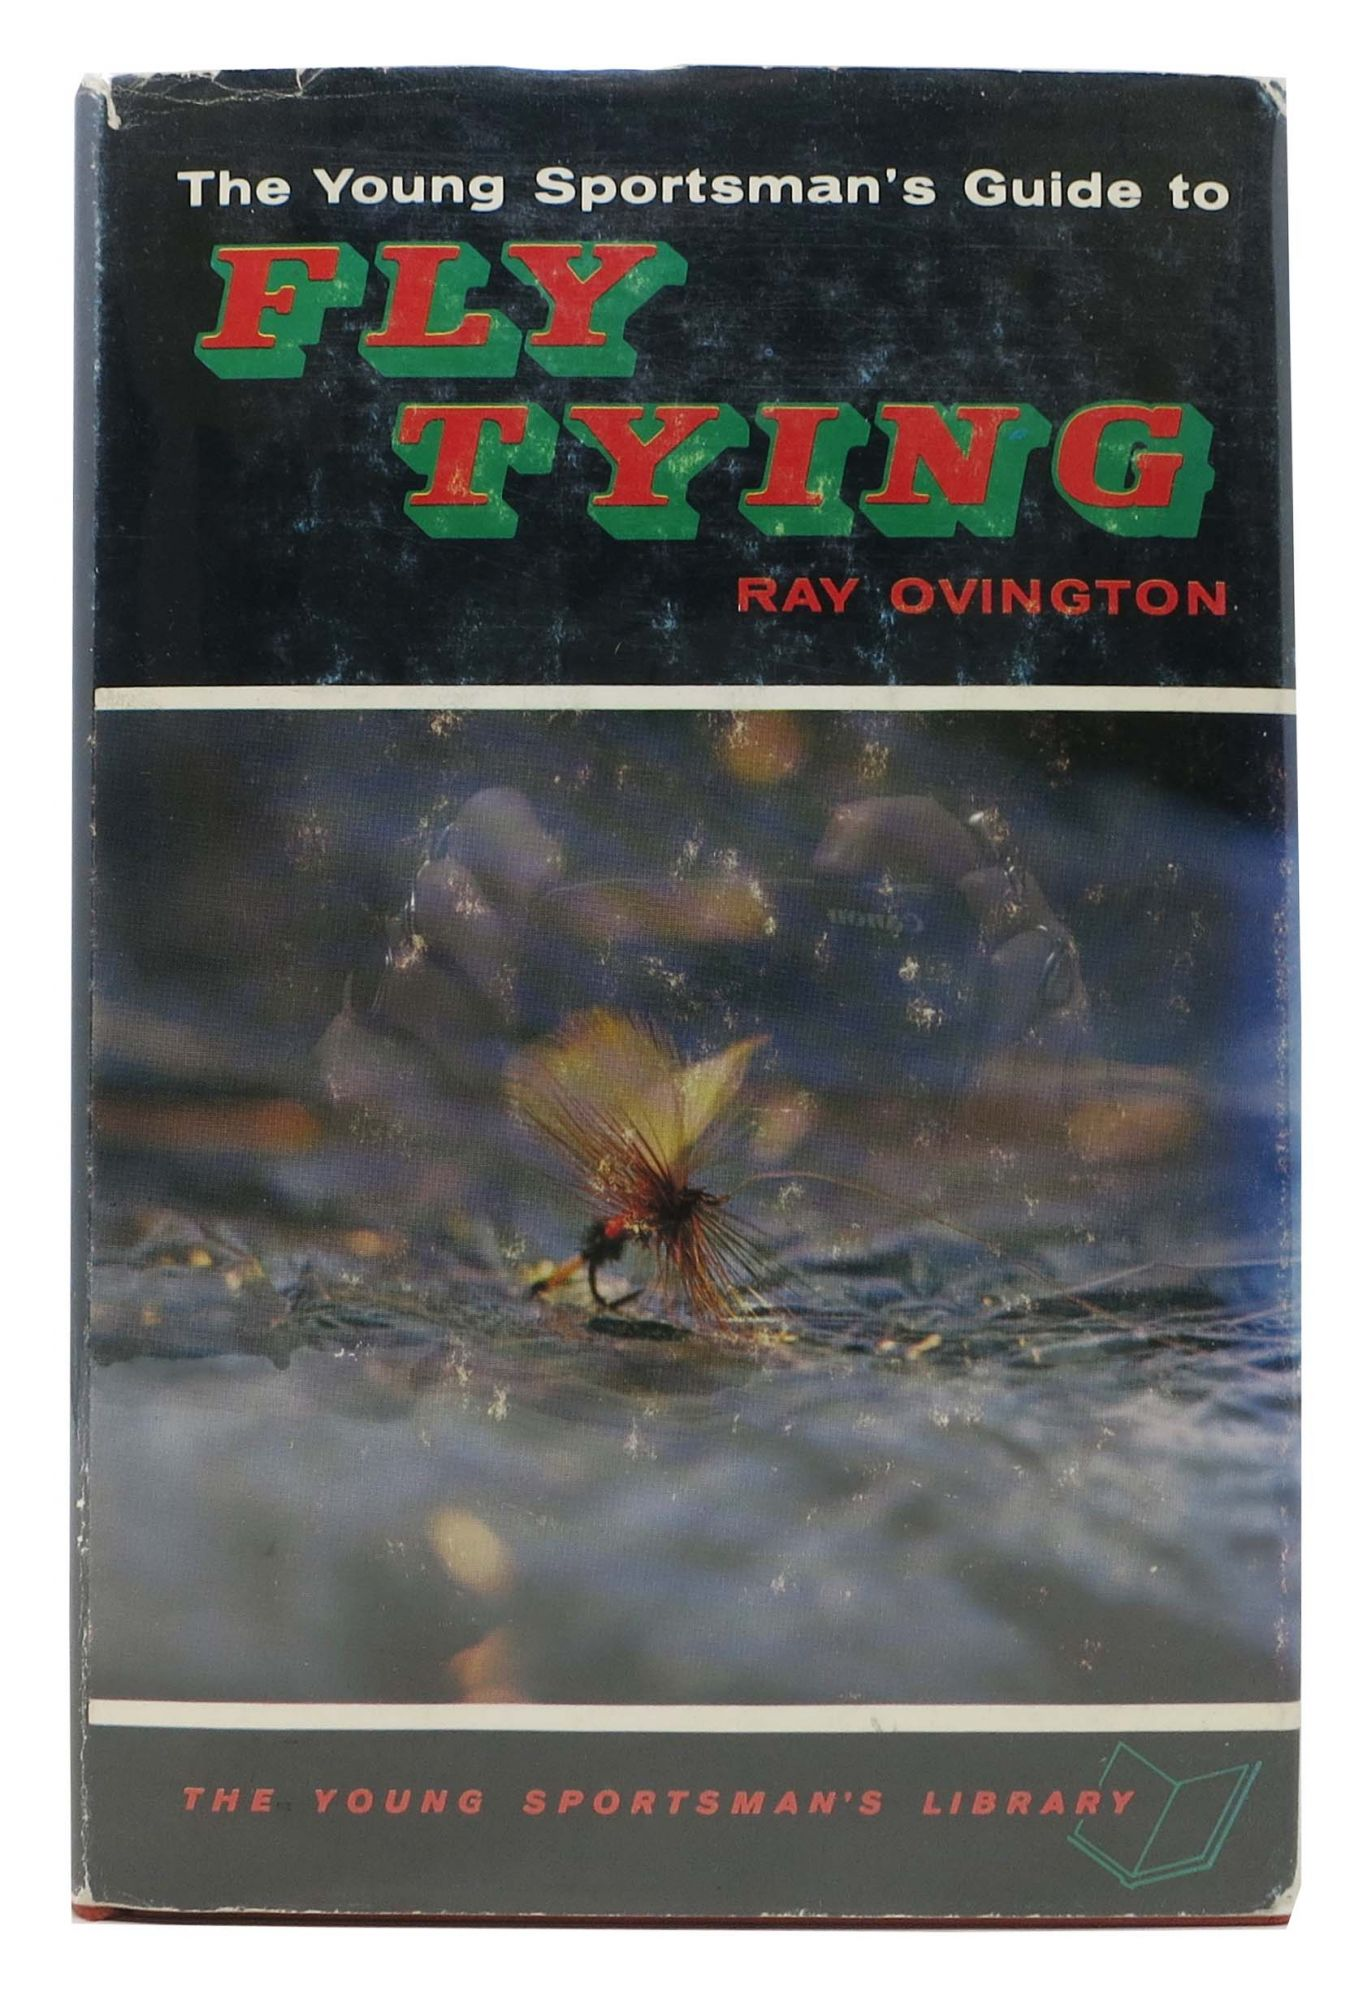 The YOUNG SPORTSMAN'S GUIDE To FLY TYING by Ray Ovington on Tavistock Books